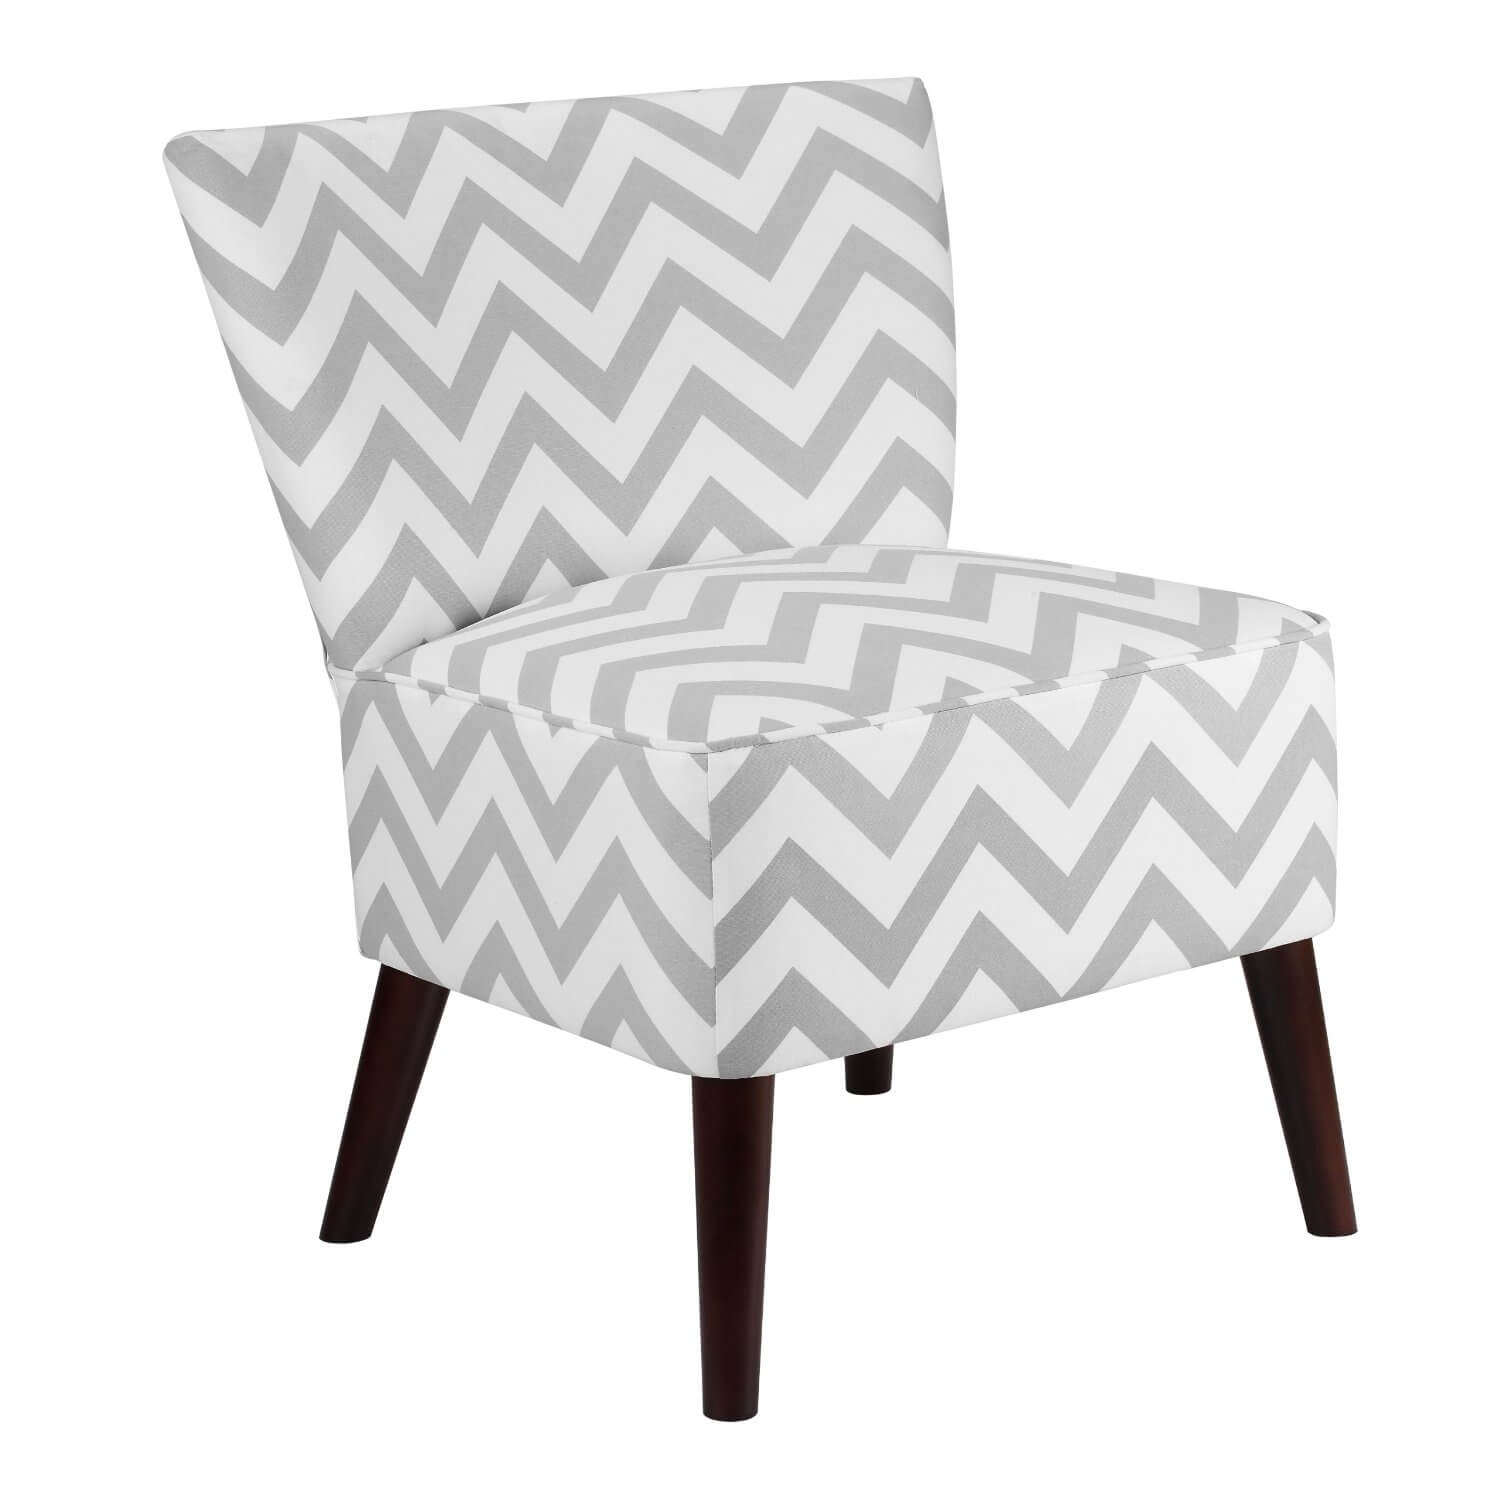 The slipper design features an upholstered seat and back over wooden frame, with a deep cloth covering continuing downward from the seat itself. This specific design is a bright, simple creation with grey zig-zag pattern over dark wood legs.